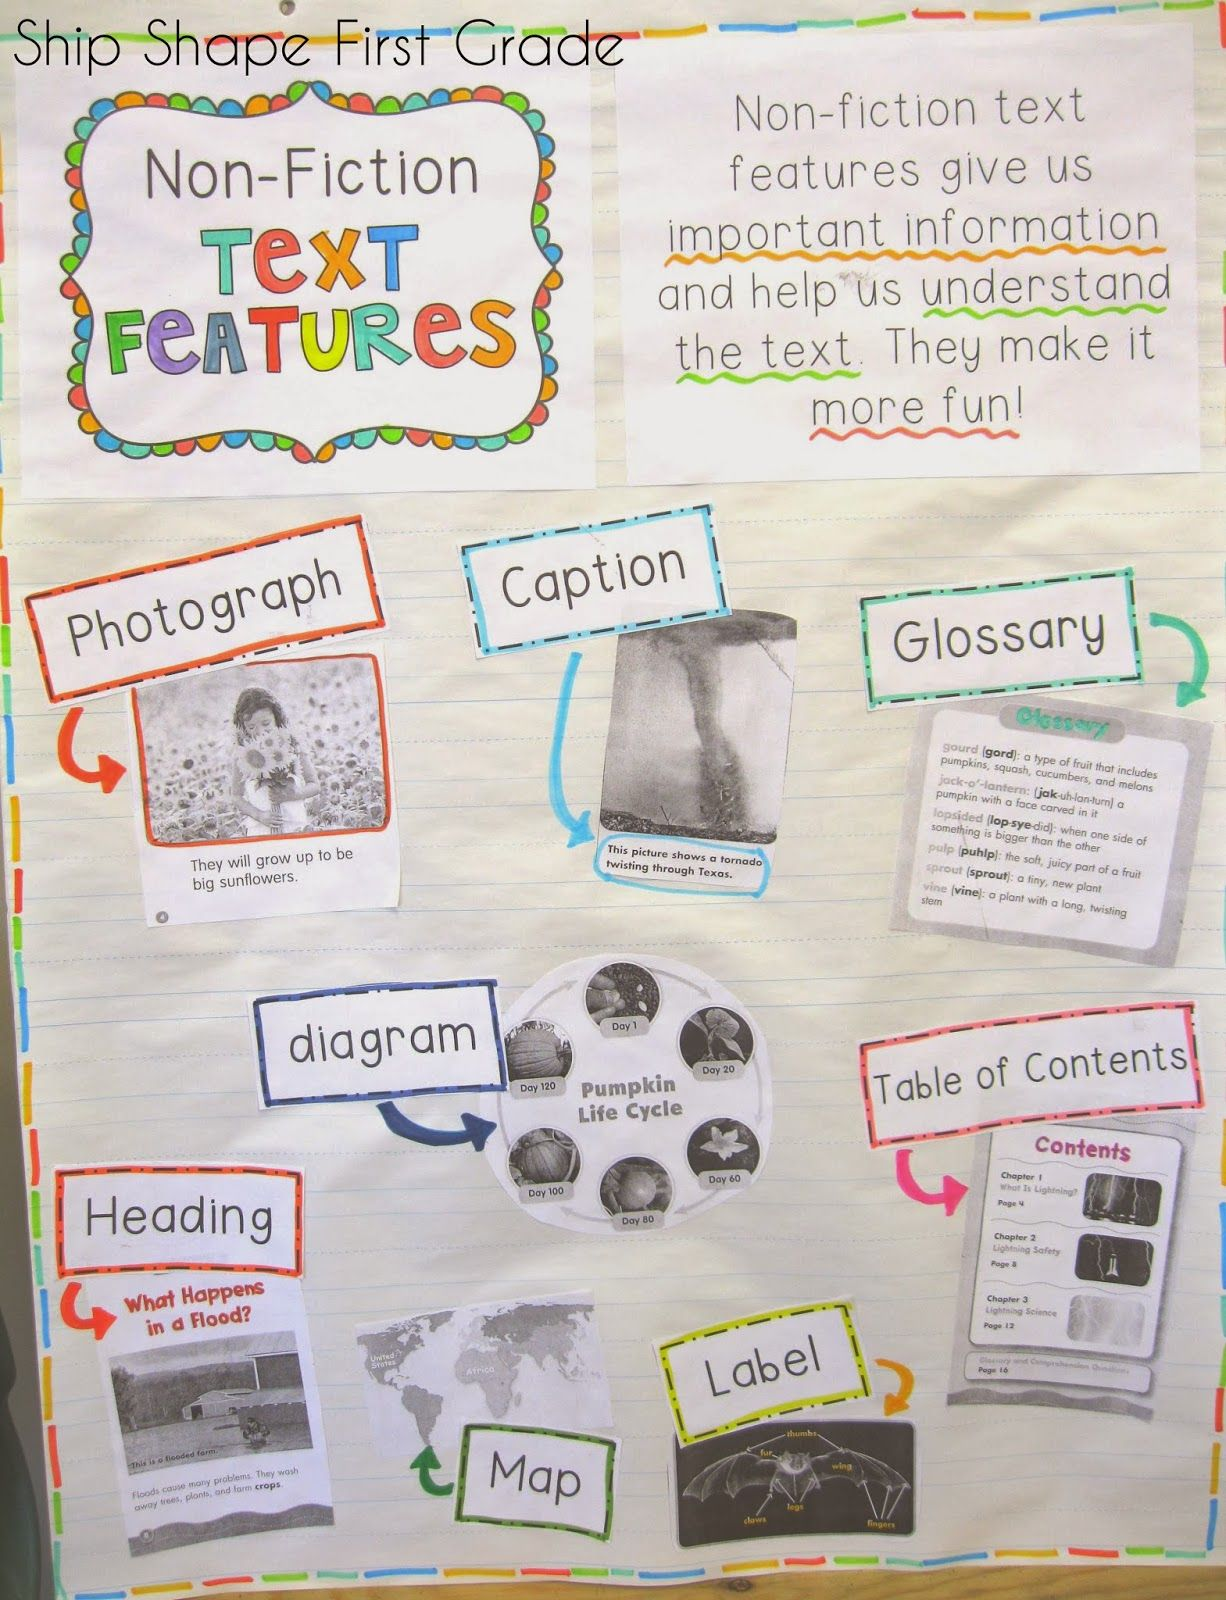 hight resolution of 100 Graphic Sources - Text Features ideas   text features